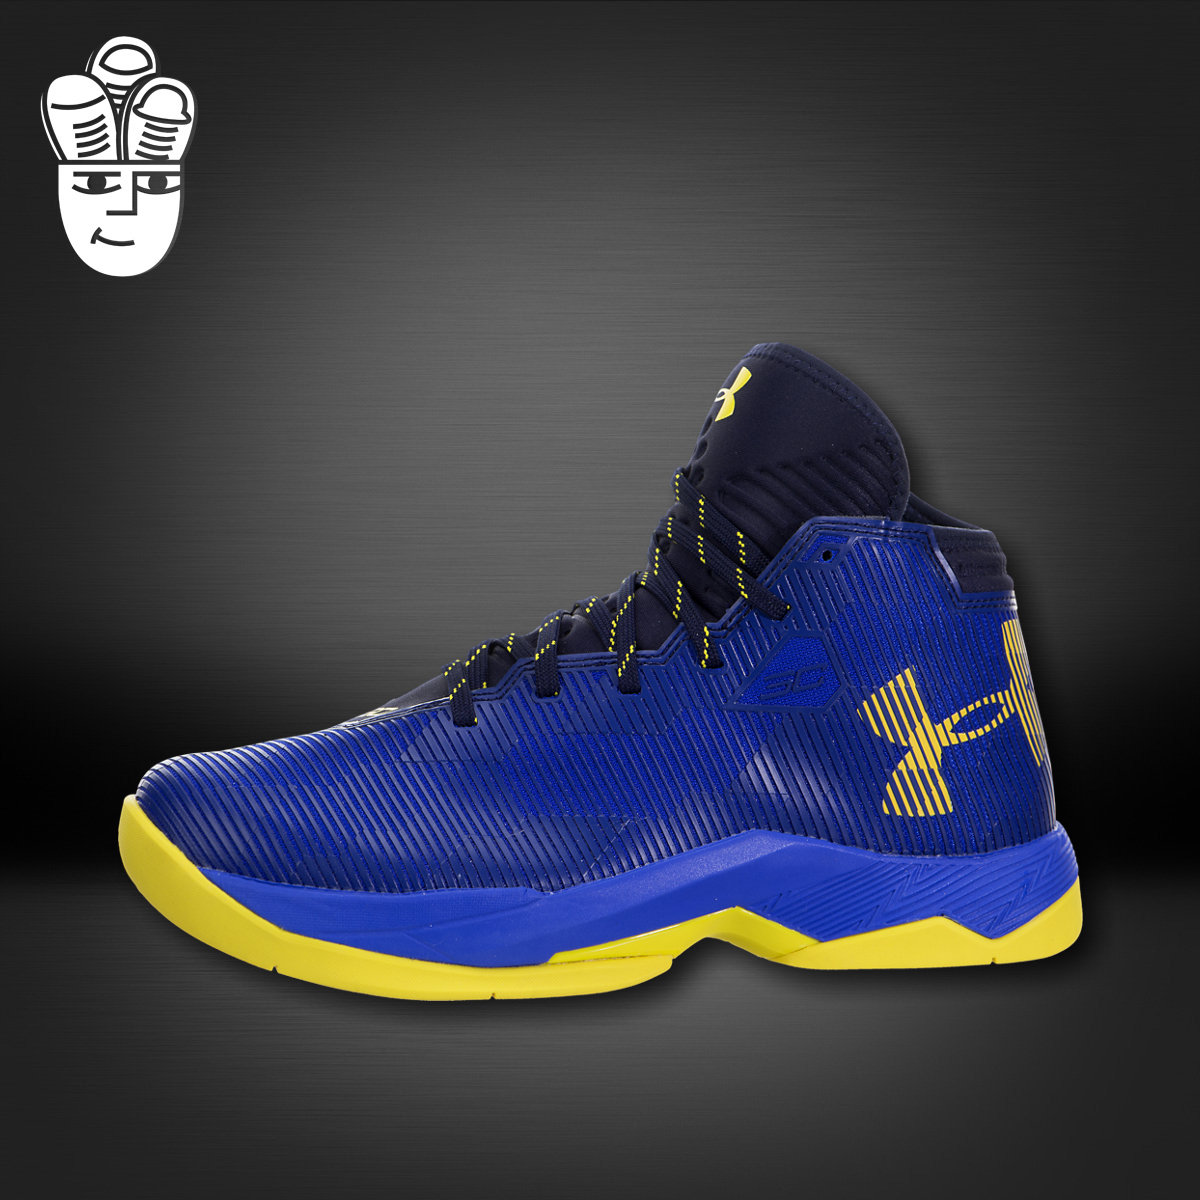 bb663edfdc7 Get Quotations · Under armour dema ua men s shoes adolescents curry curry  2.5 high top basketball shoes